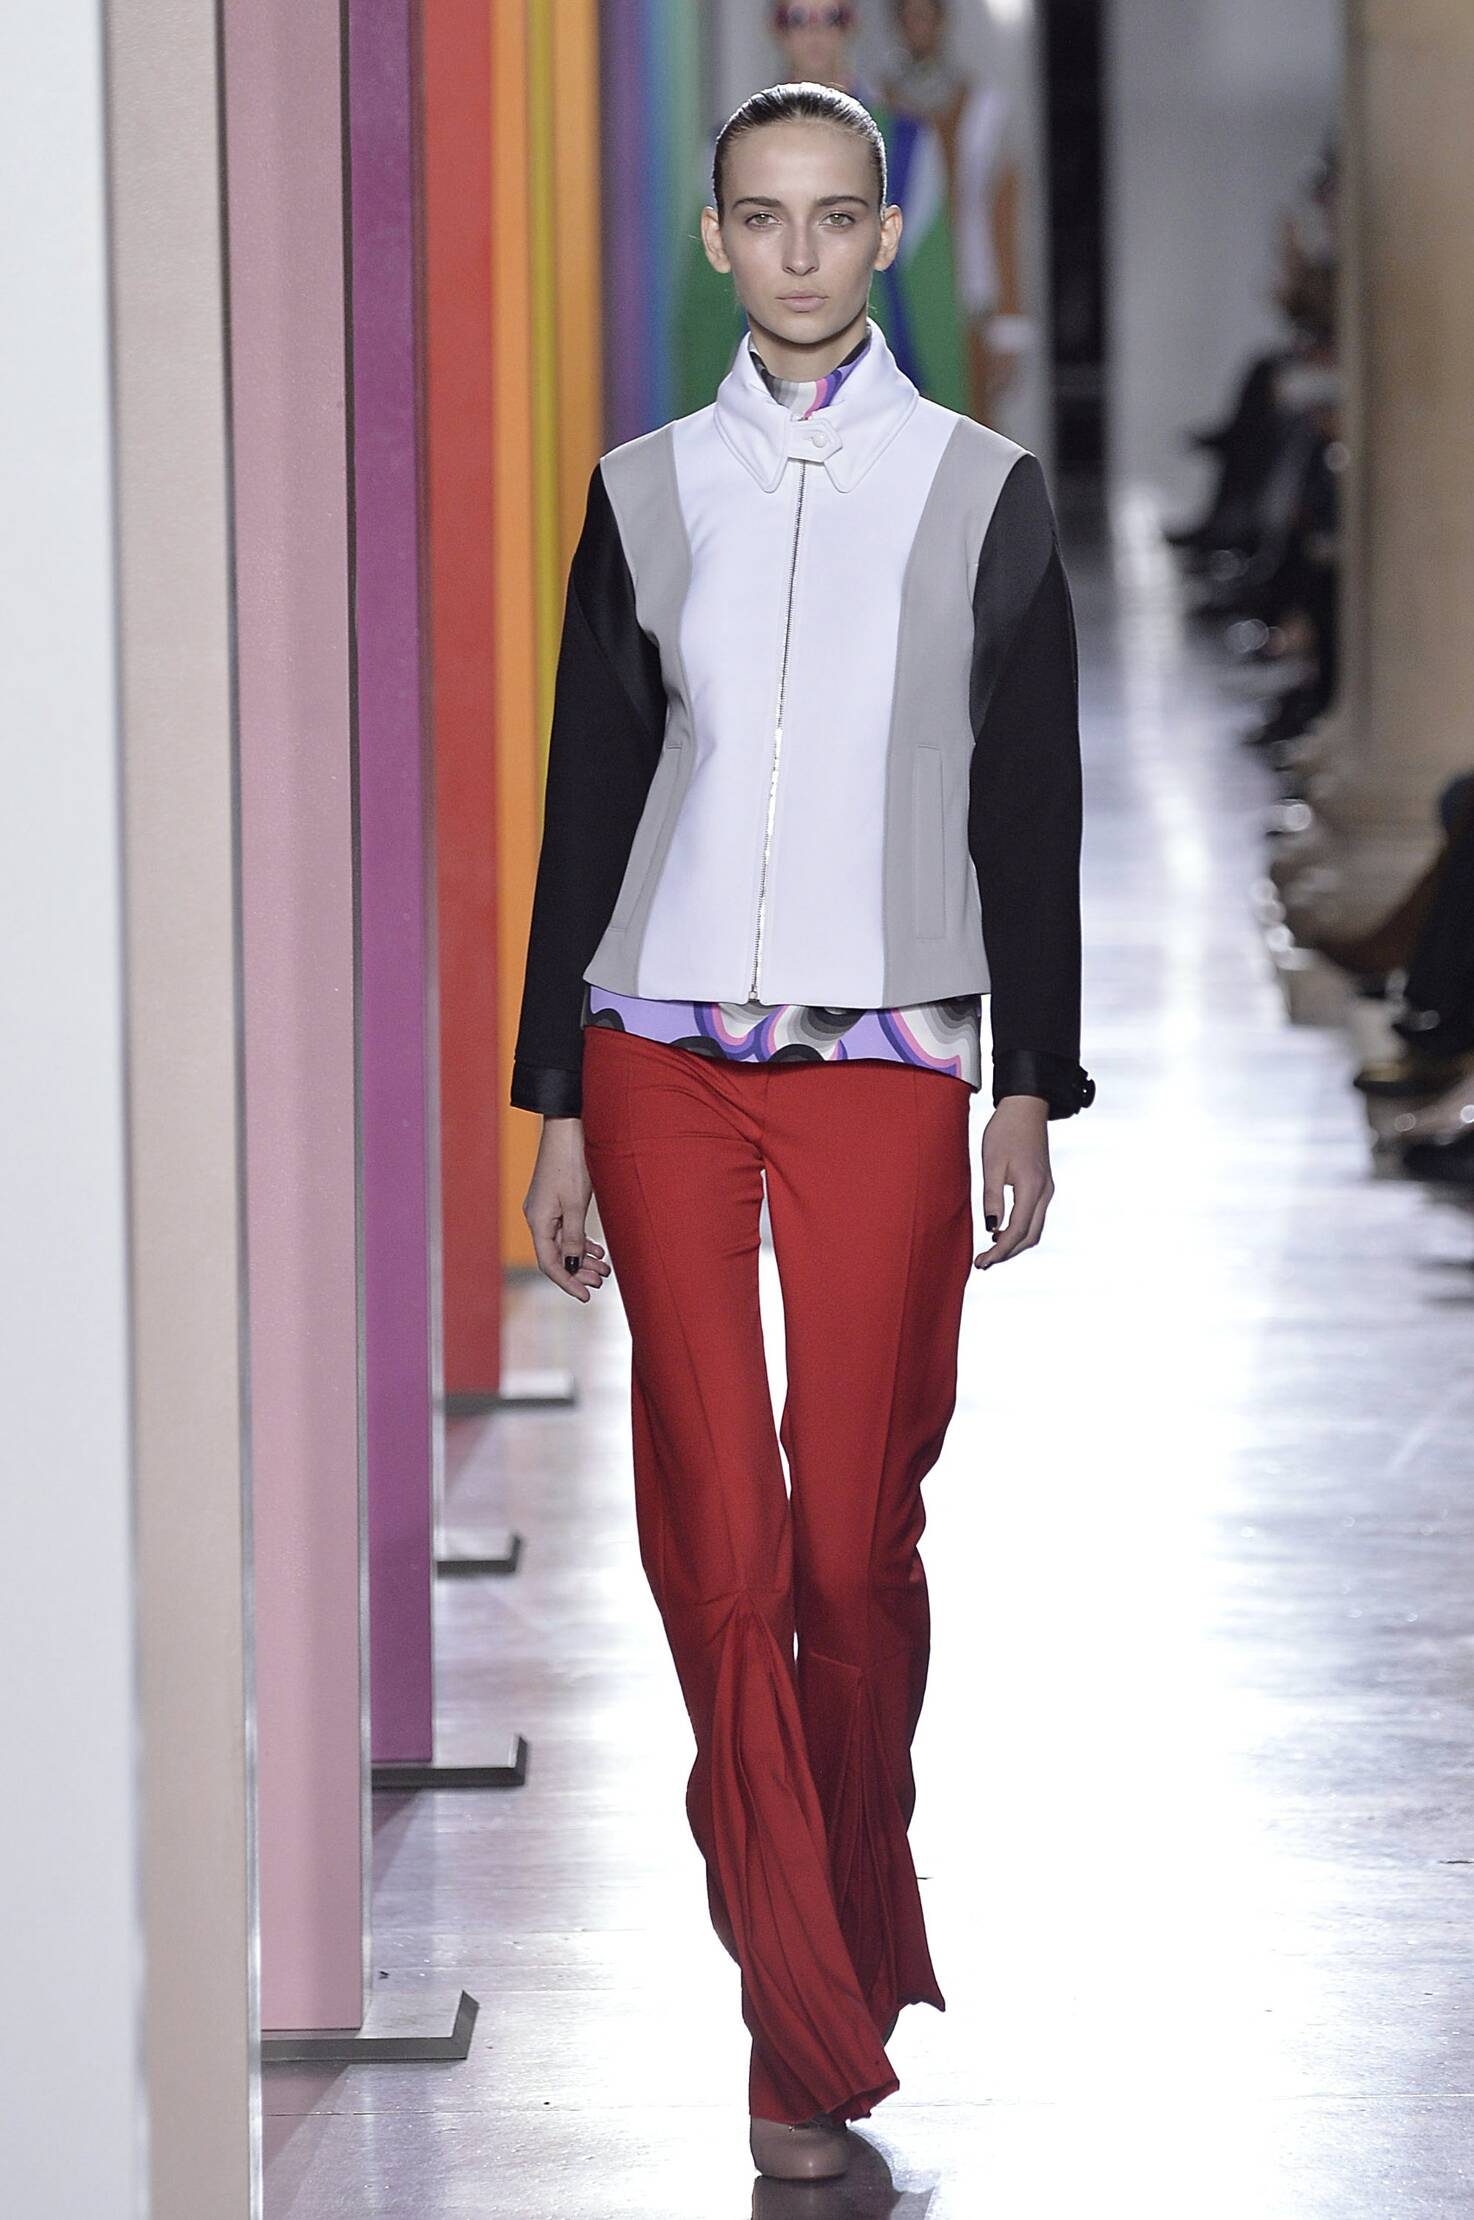 Jonathan Saunders Collection Fall 2015 Catwalk